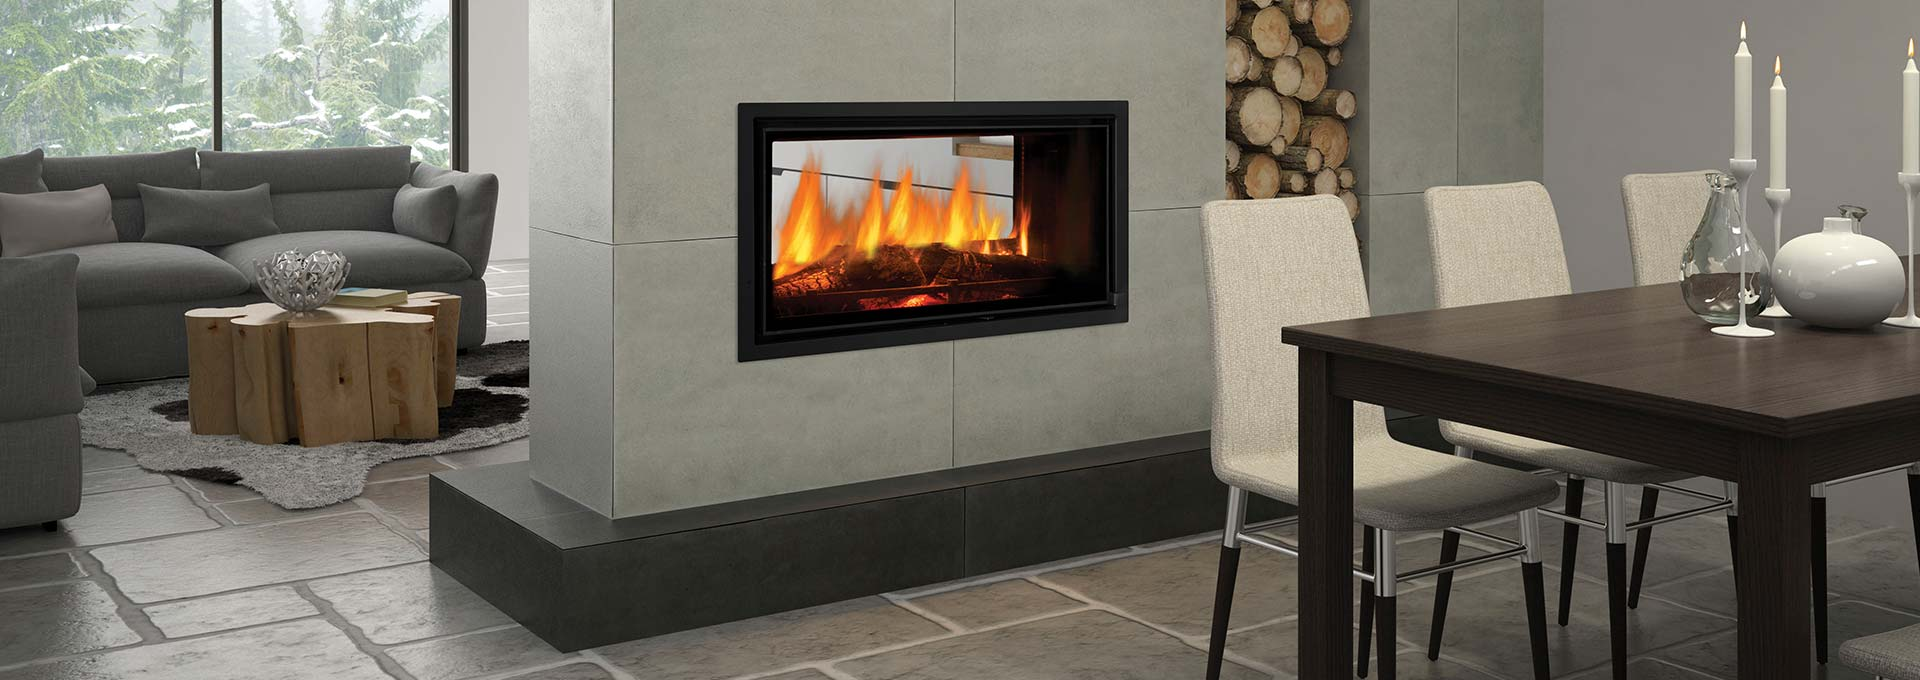 Buy The Regency Mansfield Wood Fireplace At Gas Log Fires